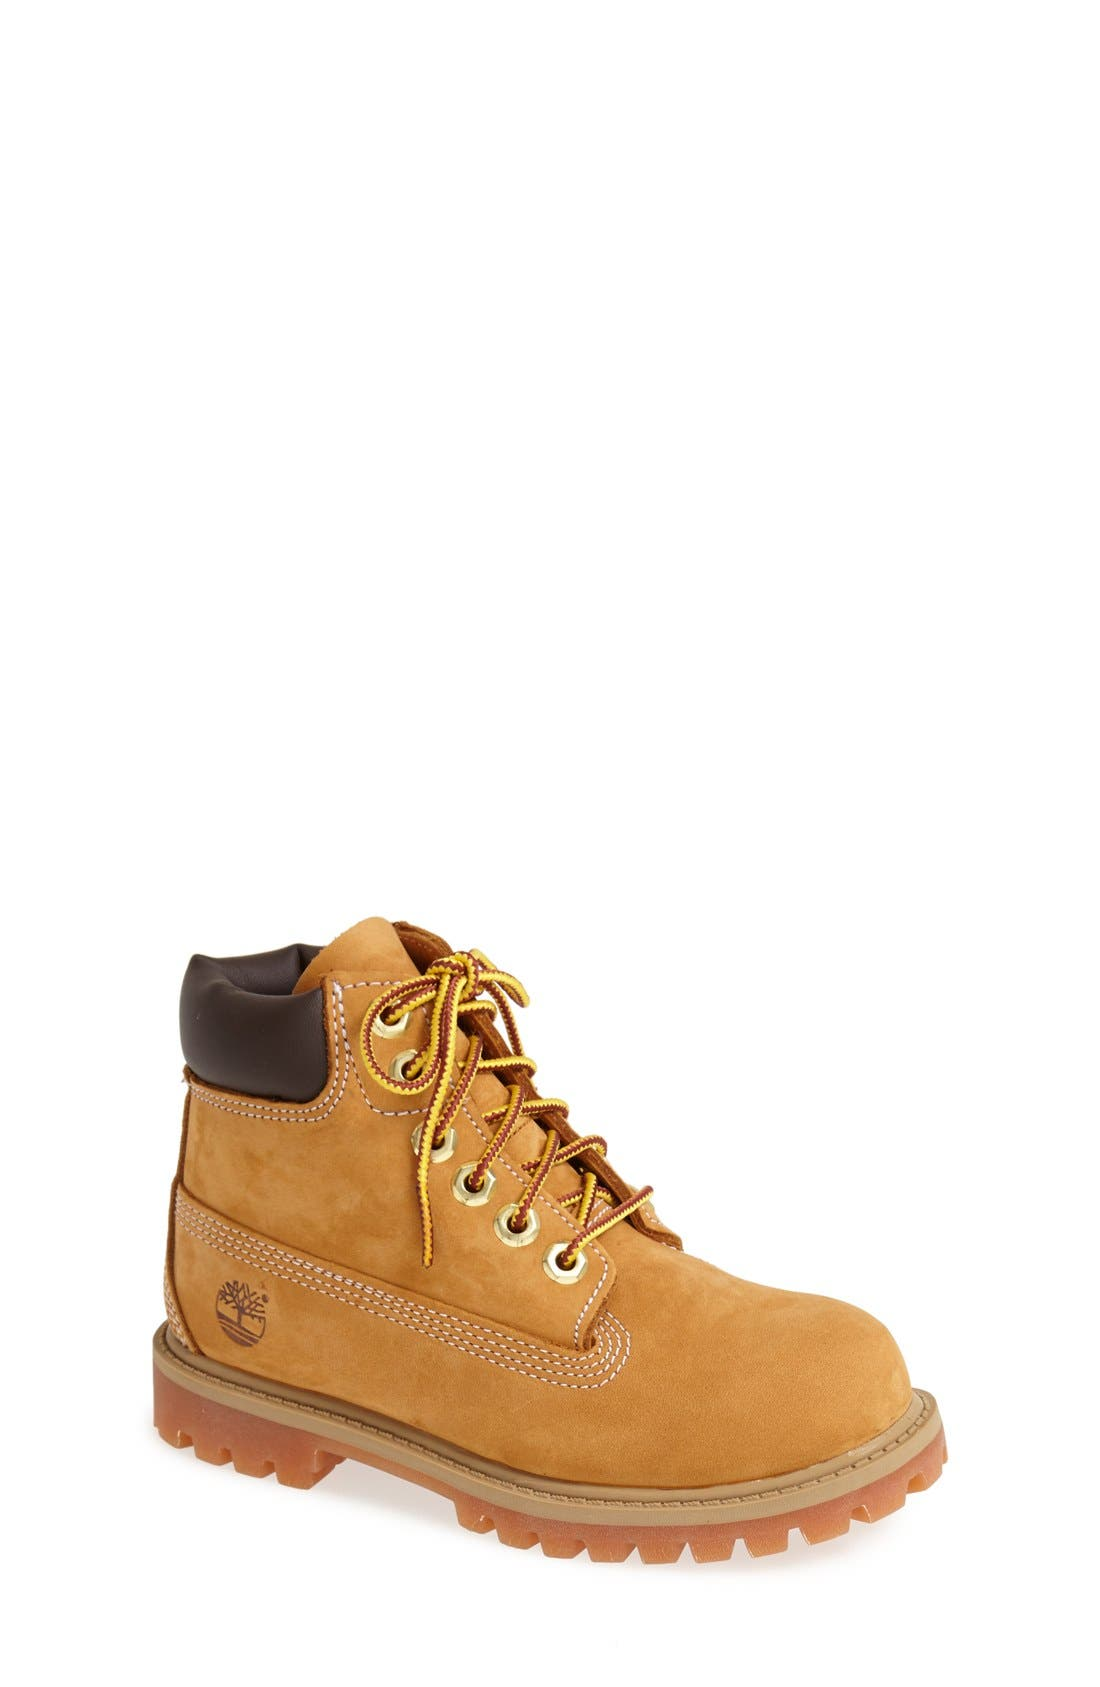 TIMBERLAND, '6 Inch Premium' Waterproof Boot, Main thumbnail 1, color, WHEAT NUBUCK